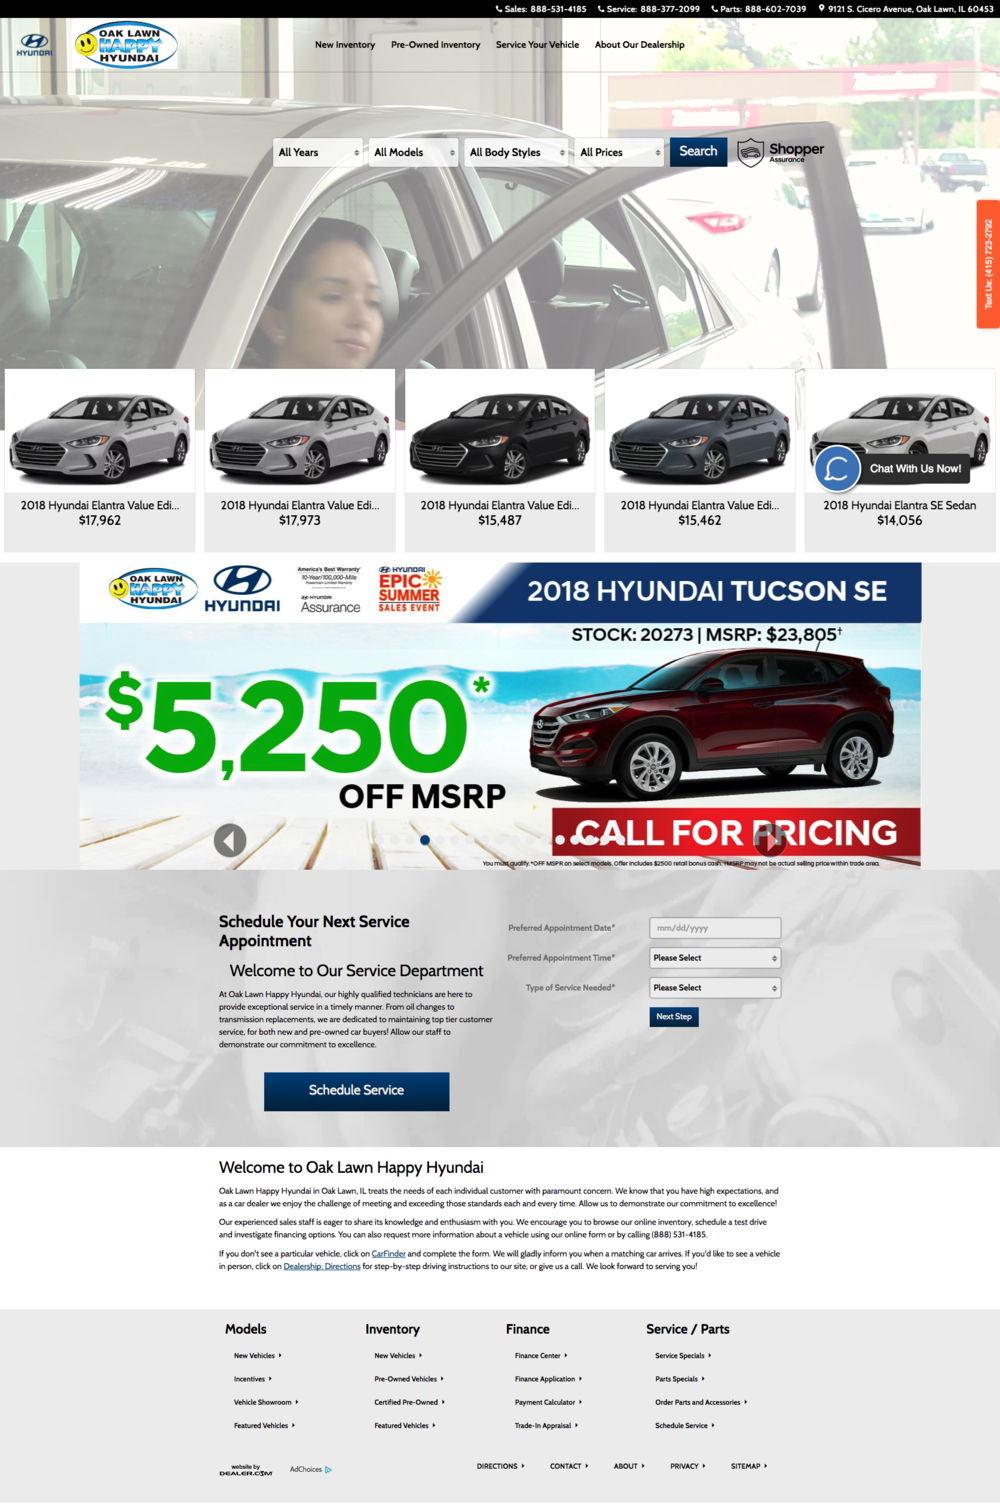 screencapture-myhappyhyundai-2018-06-26-11_56_31.png